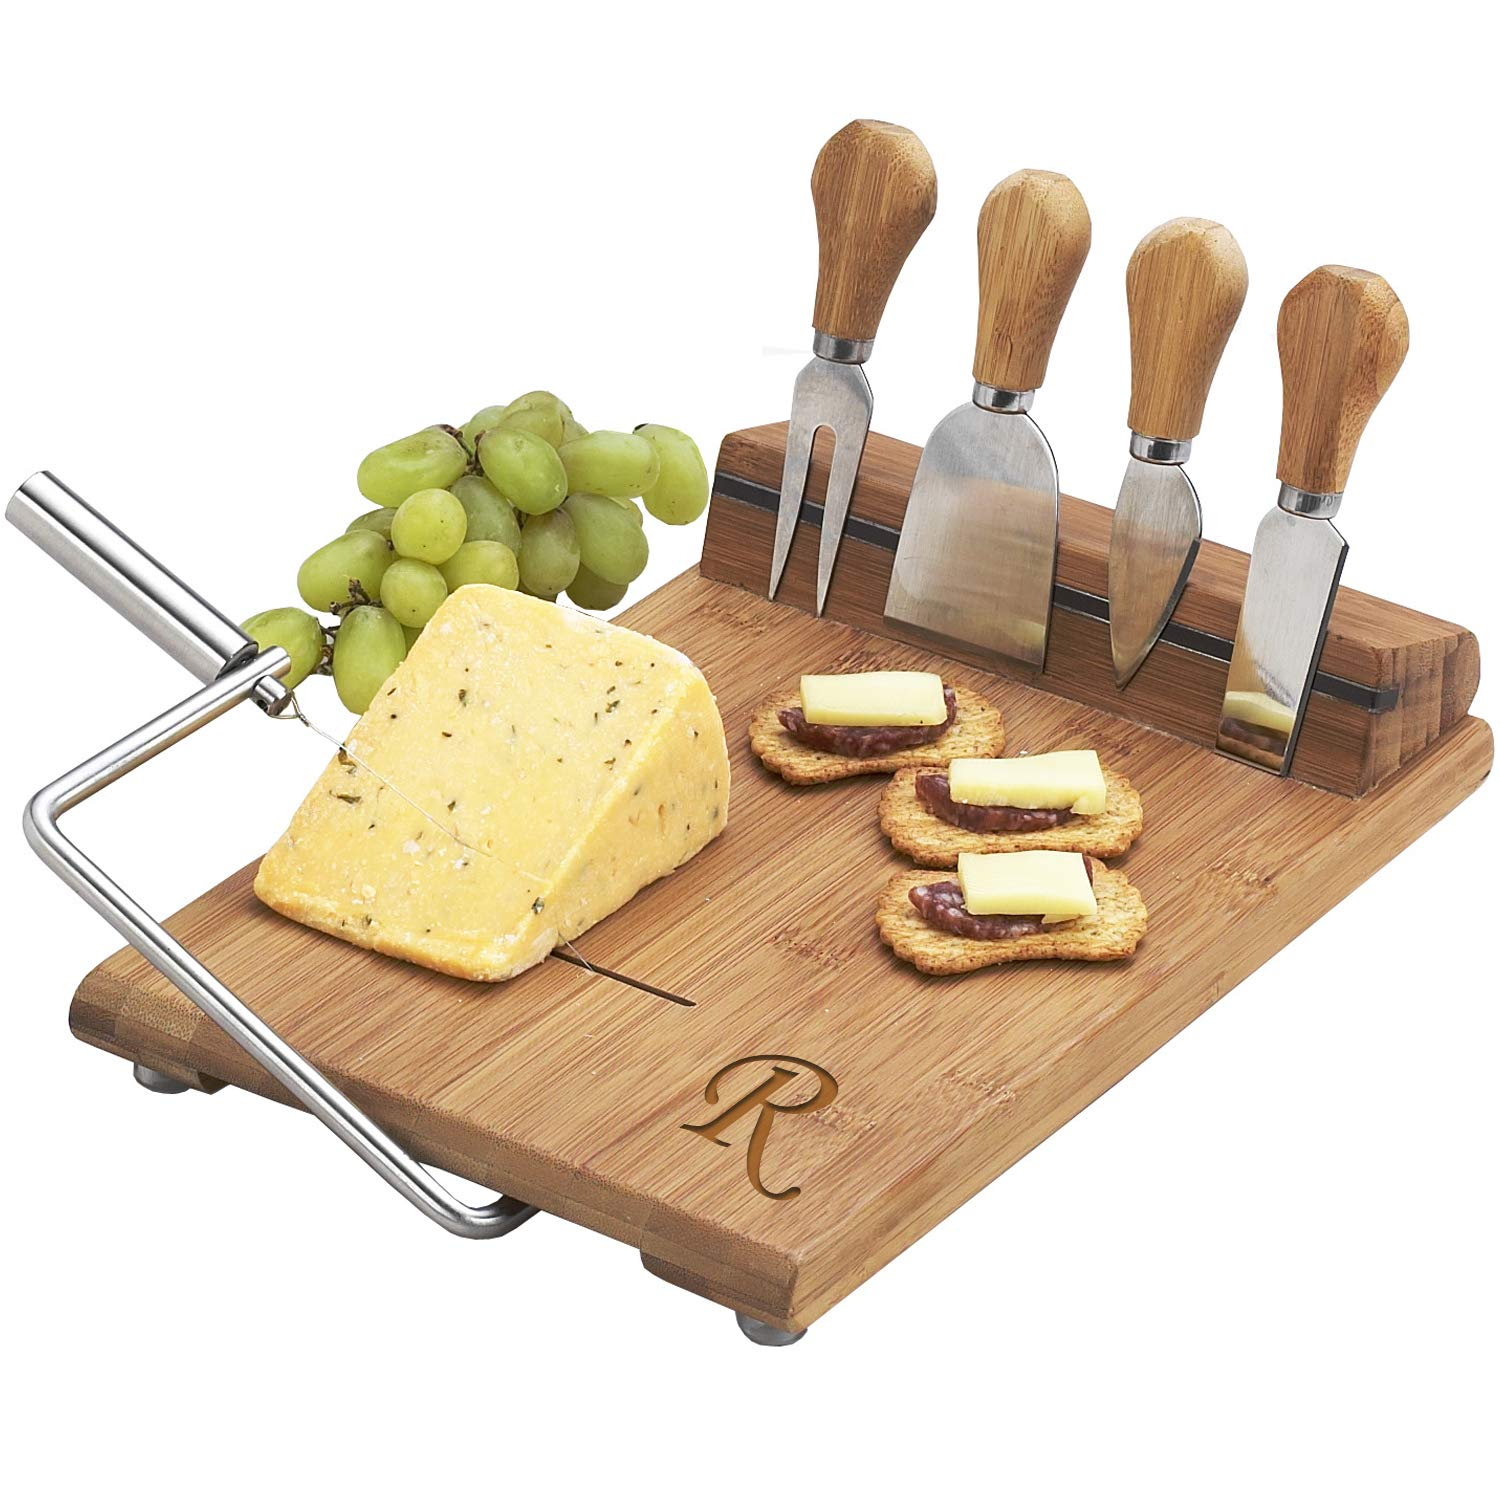 Picnic at Ascot Personalized Bamboo Board with Wire Cheese Slicer - 4 Stainless Steel Tools & Cheese Markers - 12'' x 8''- Designed & Quality checked in the USA - Letter R